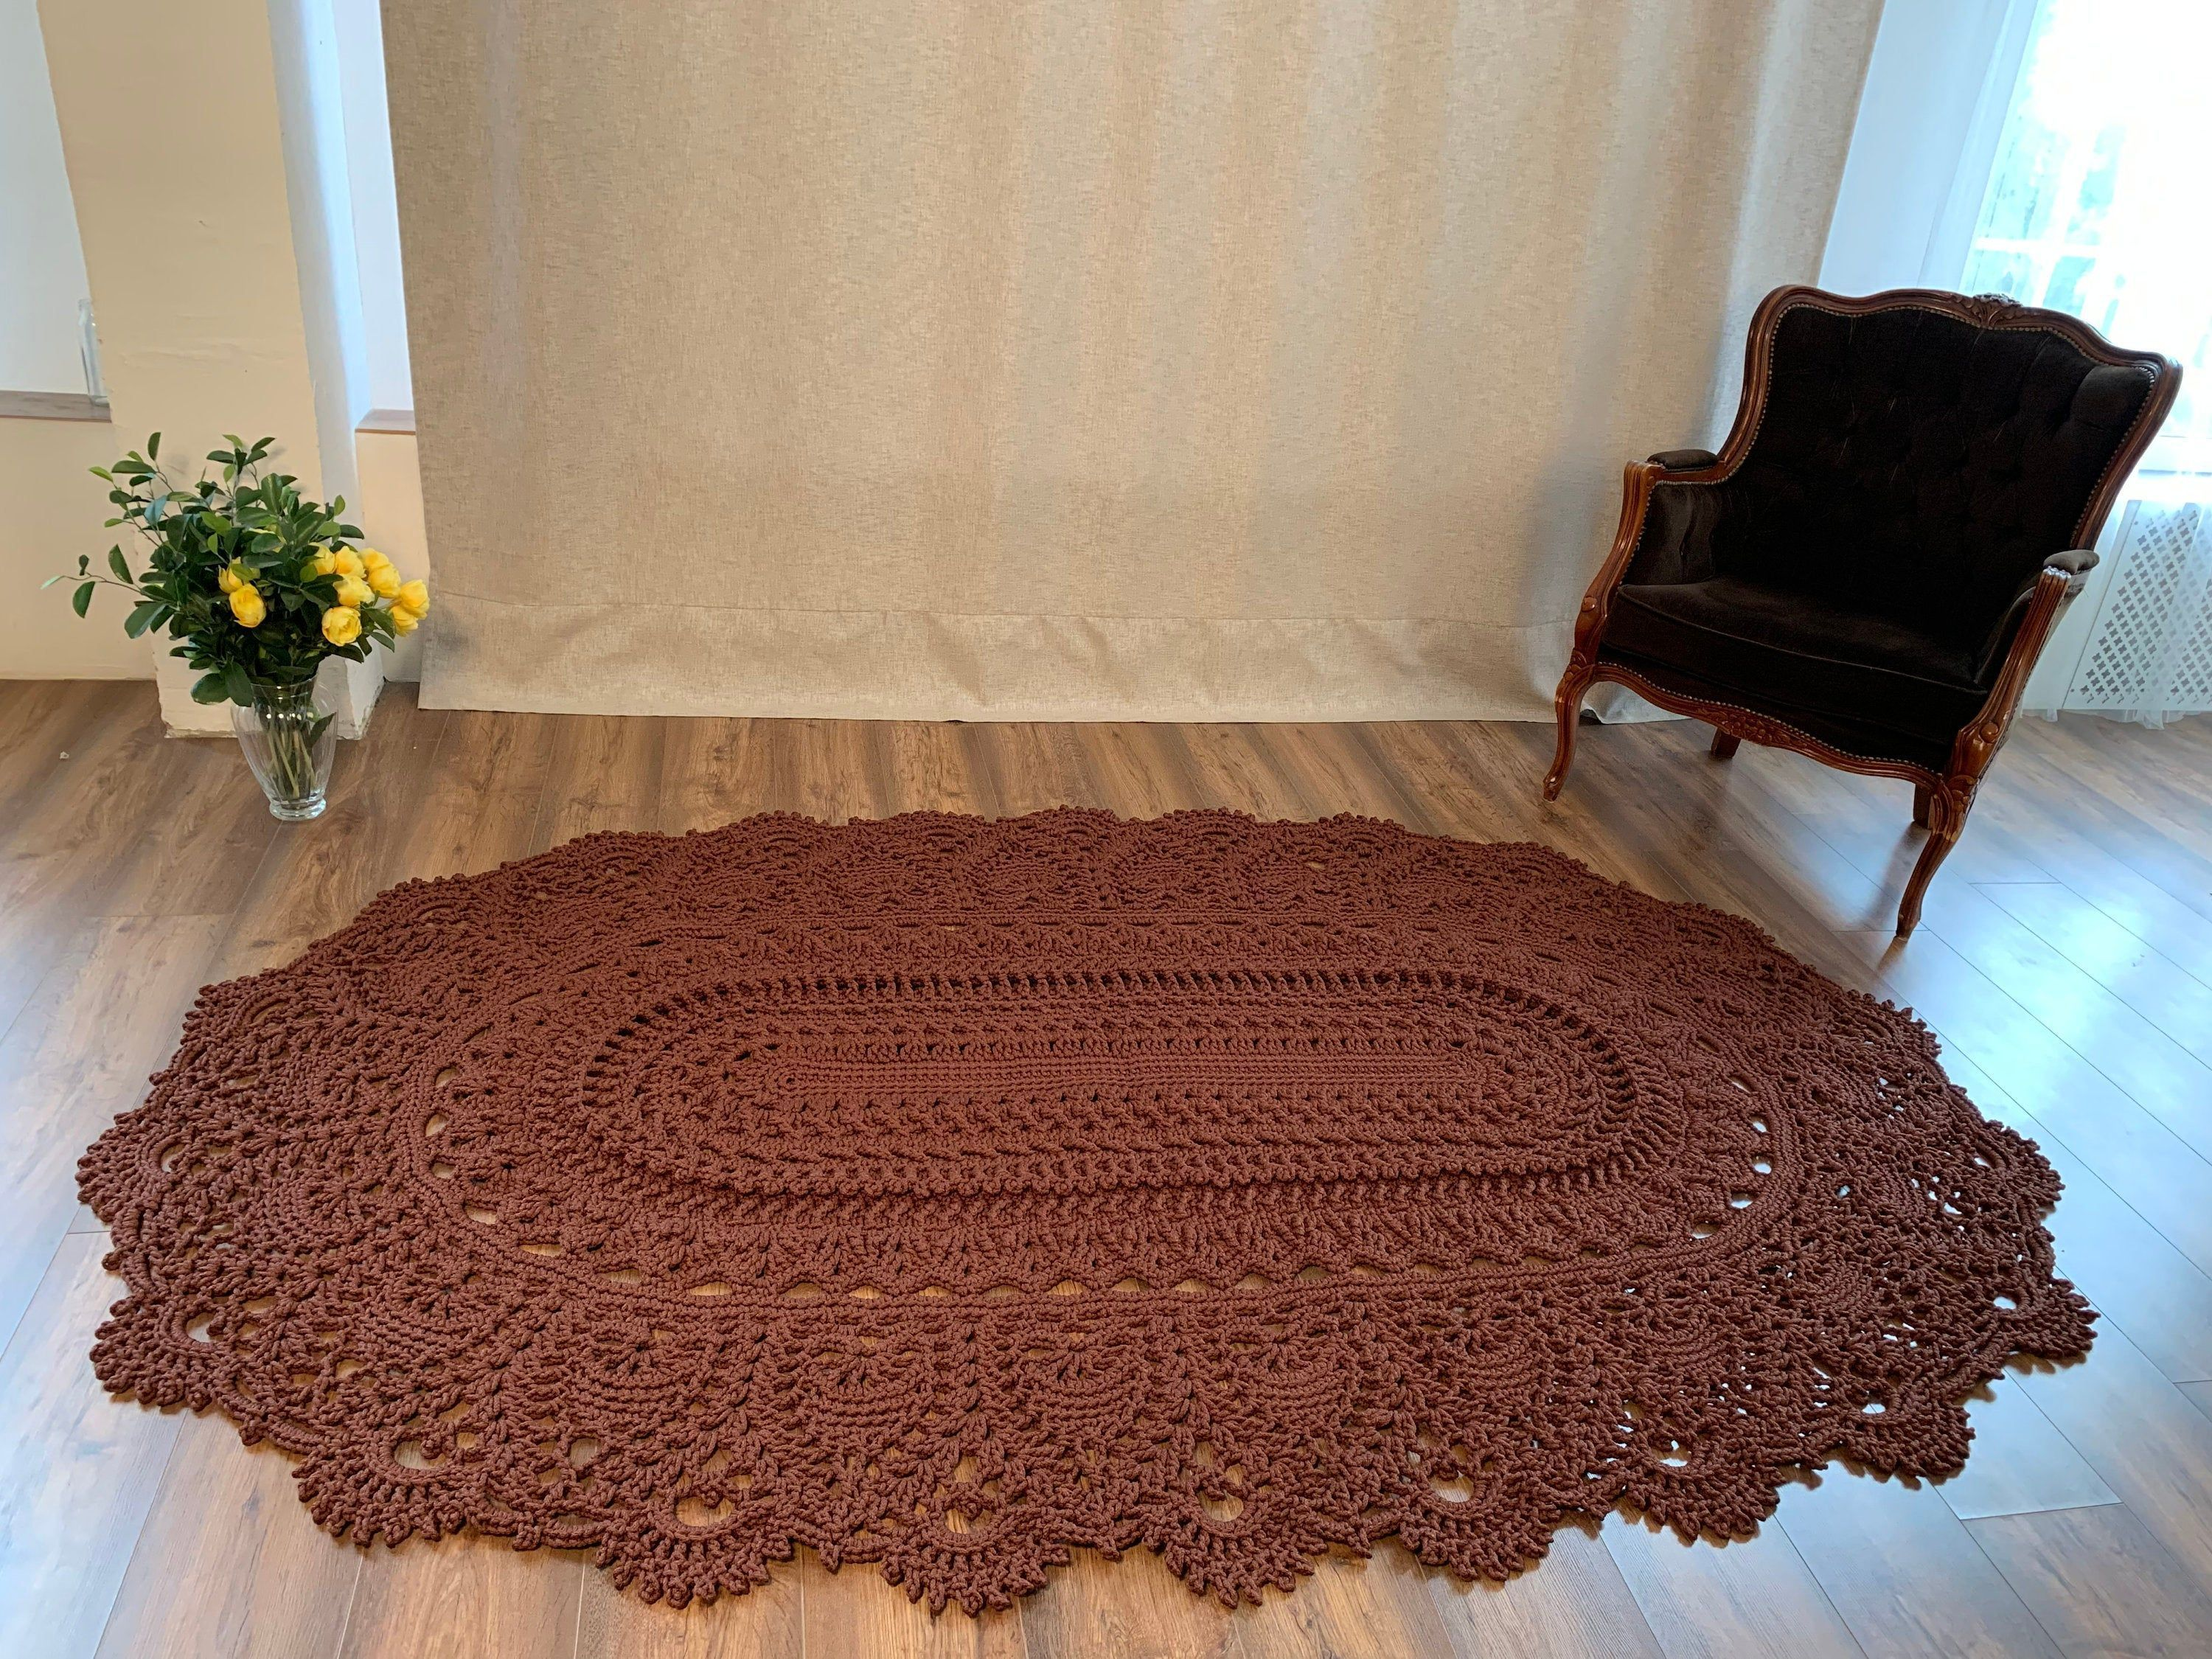 Oval Area Rugs Bedroom Decor Large Floor Rugs Modern Rug Knitted